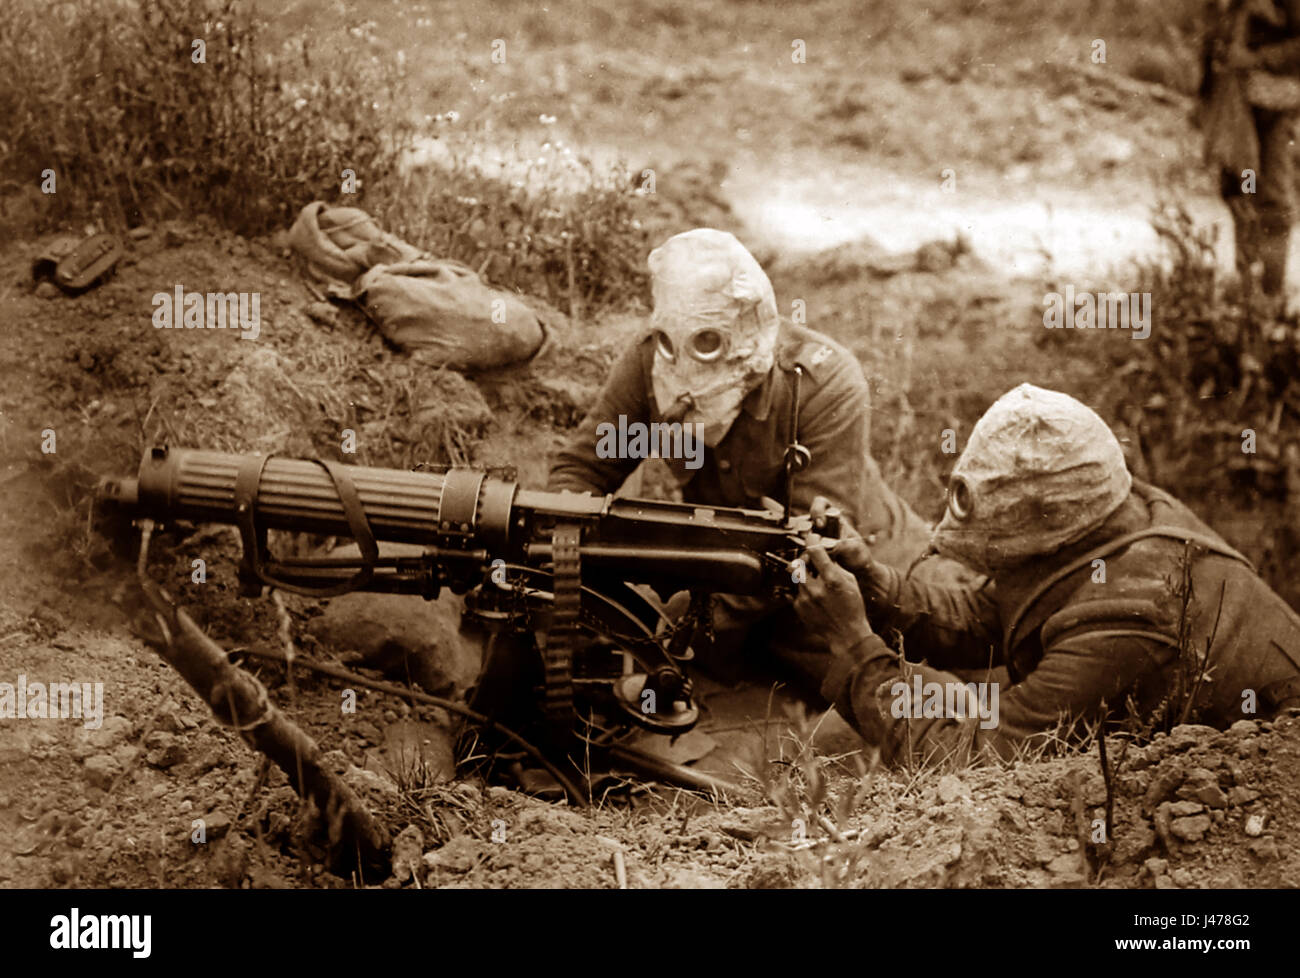 WW1 - Battle of the Somme - machine gunners wearing gas helmets near Ovillers - July 1916 Stock Photo